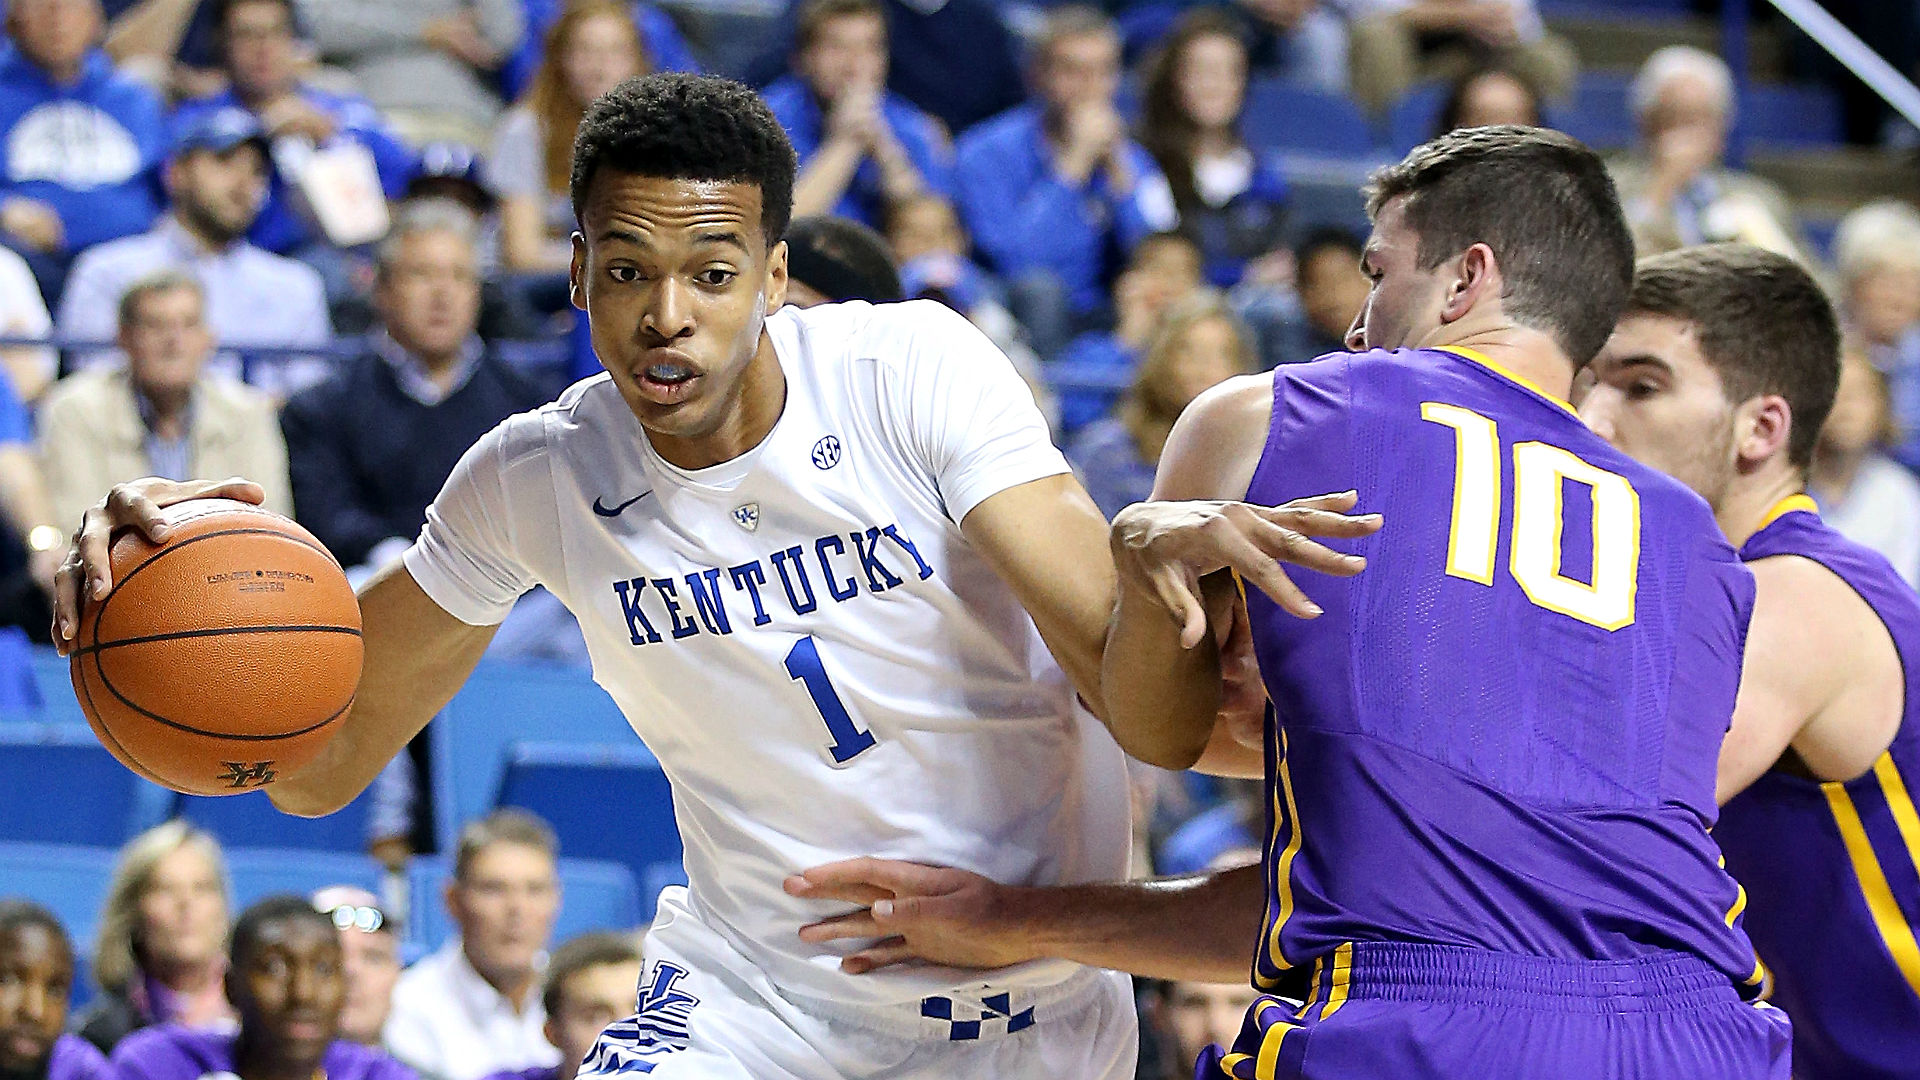 College basketball betting lines and picks - Kentucky, Kansas chalk in Champions Classic